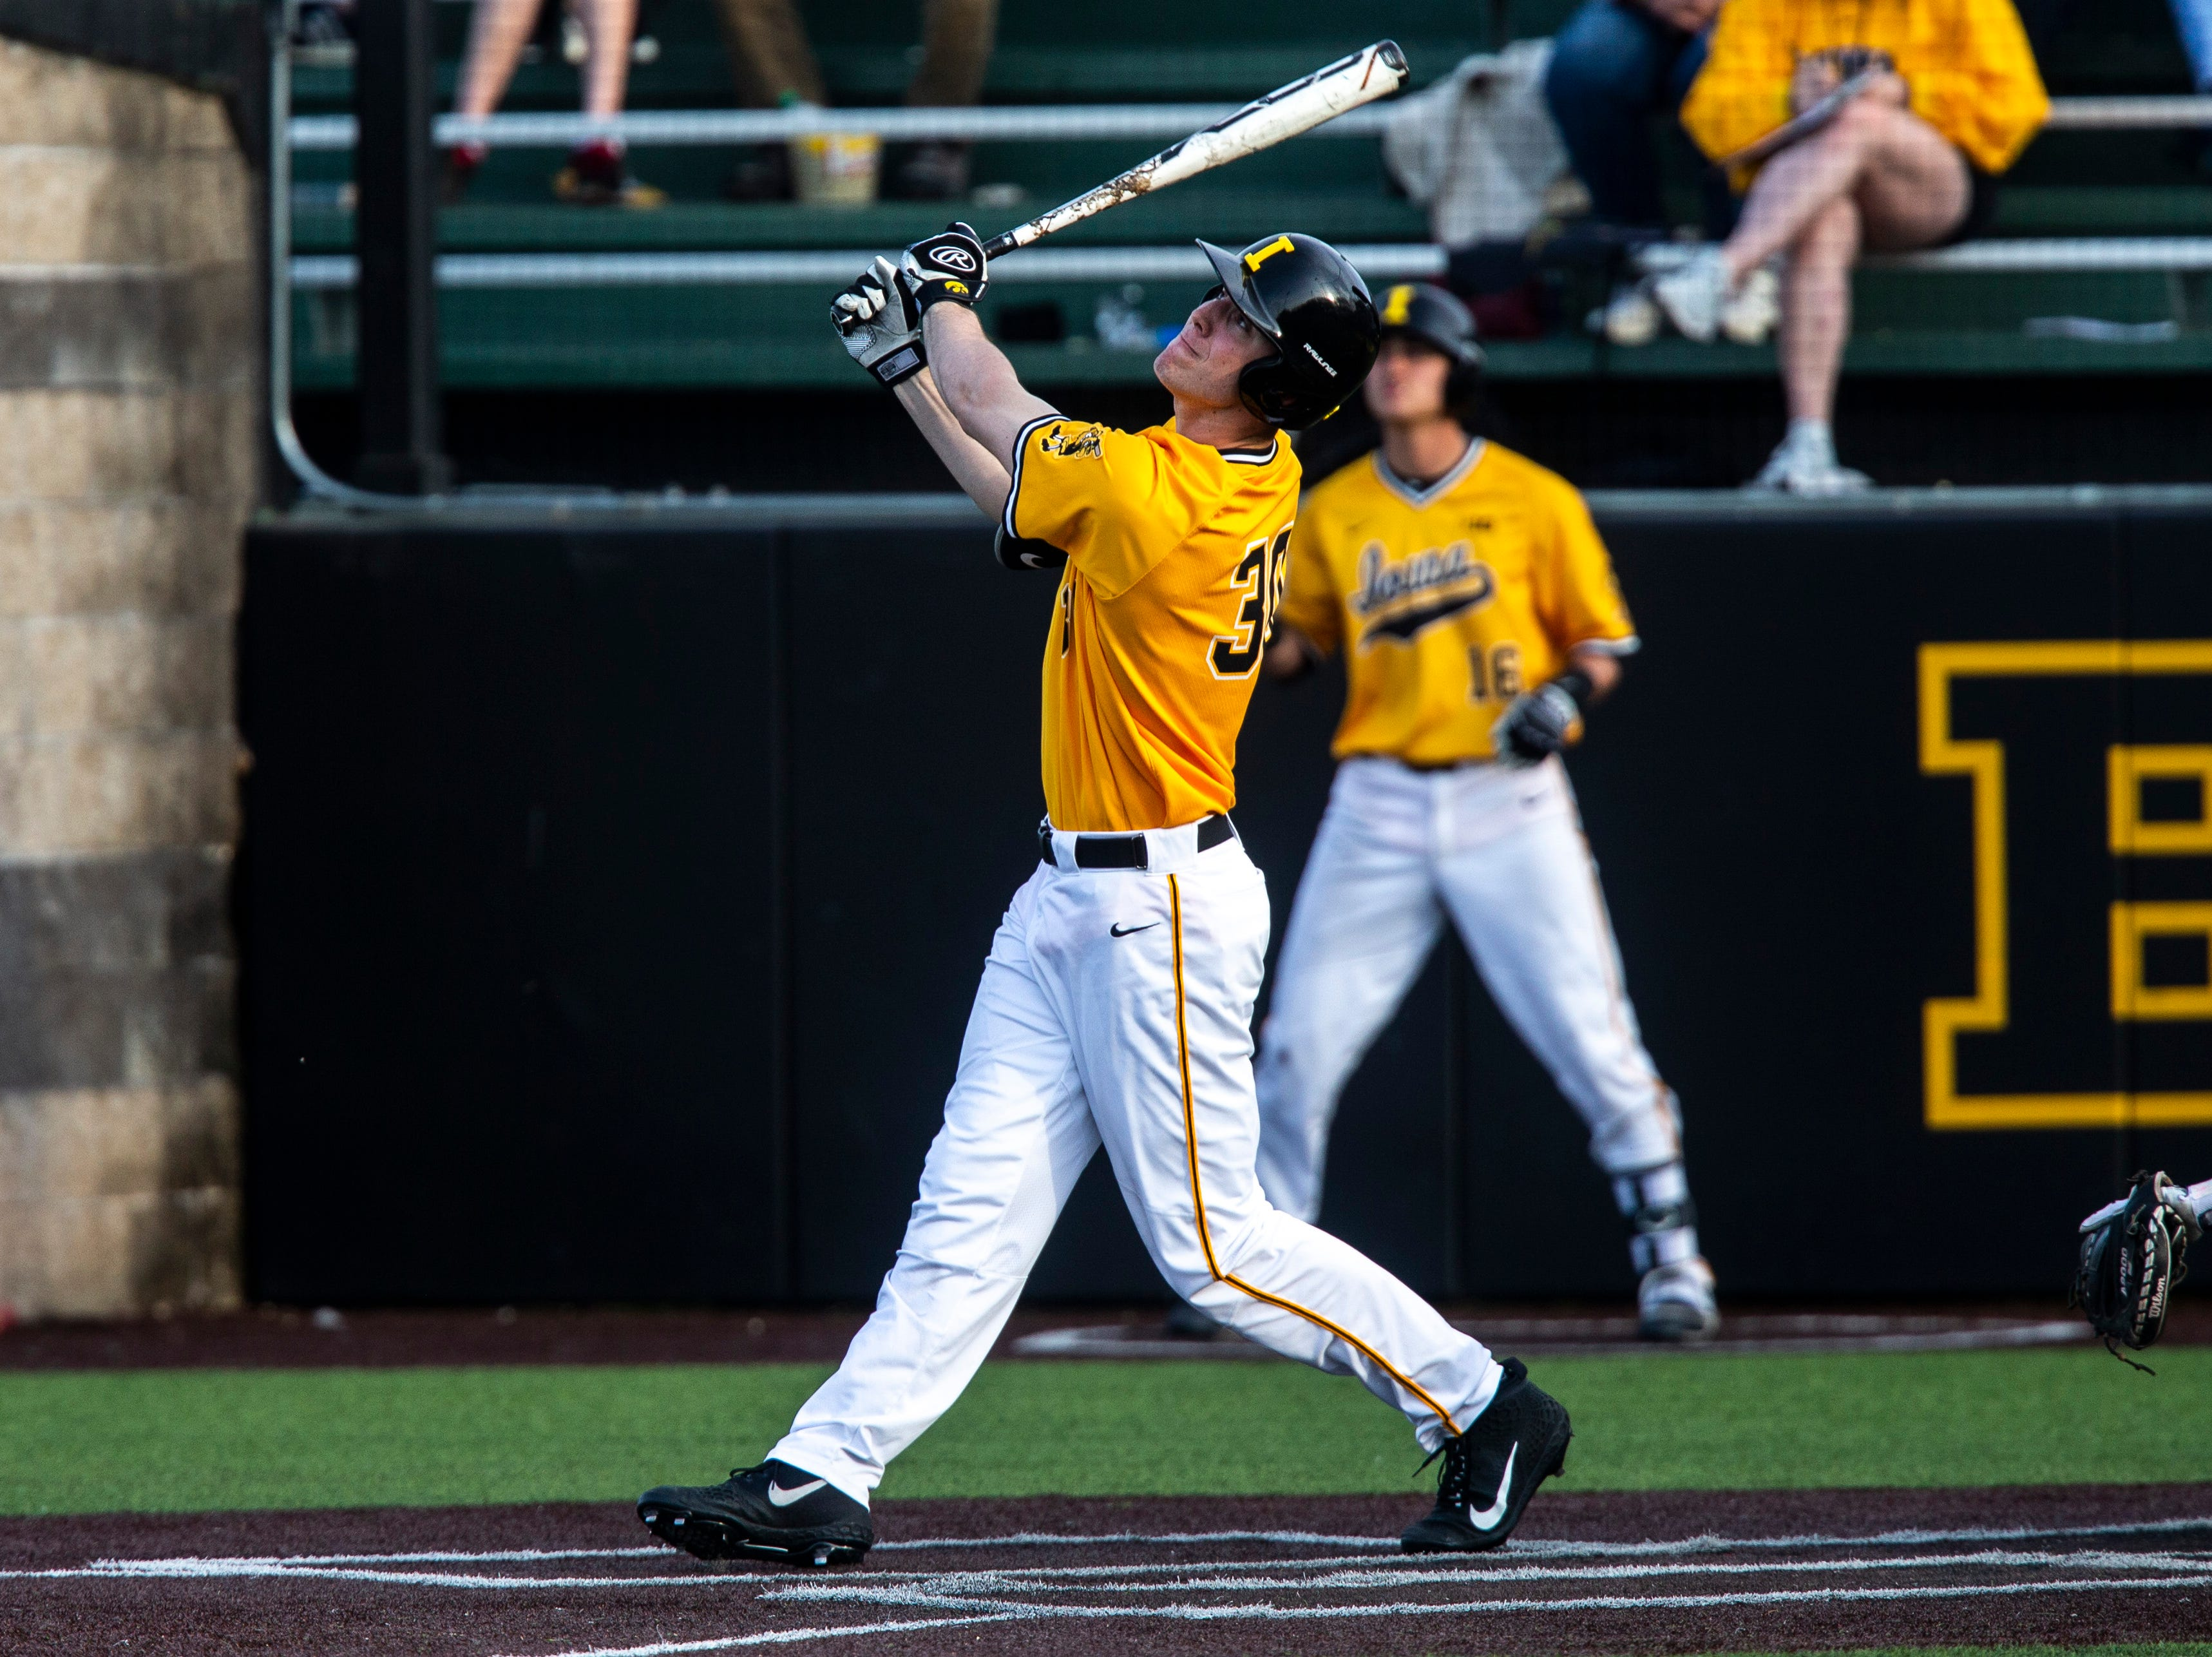 Iowa's Connor McCaffery (30) bats during a NCAA Big Ten Conference baseball game on Saturday, April 6, 2019, at Duane Banks Field in Iowa City, Iowa.